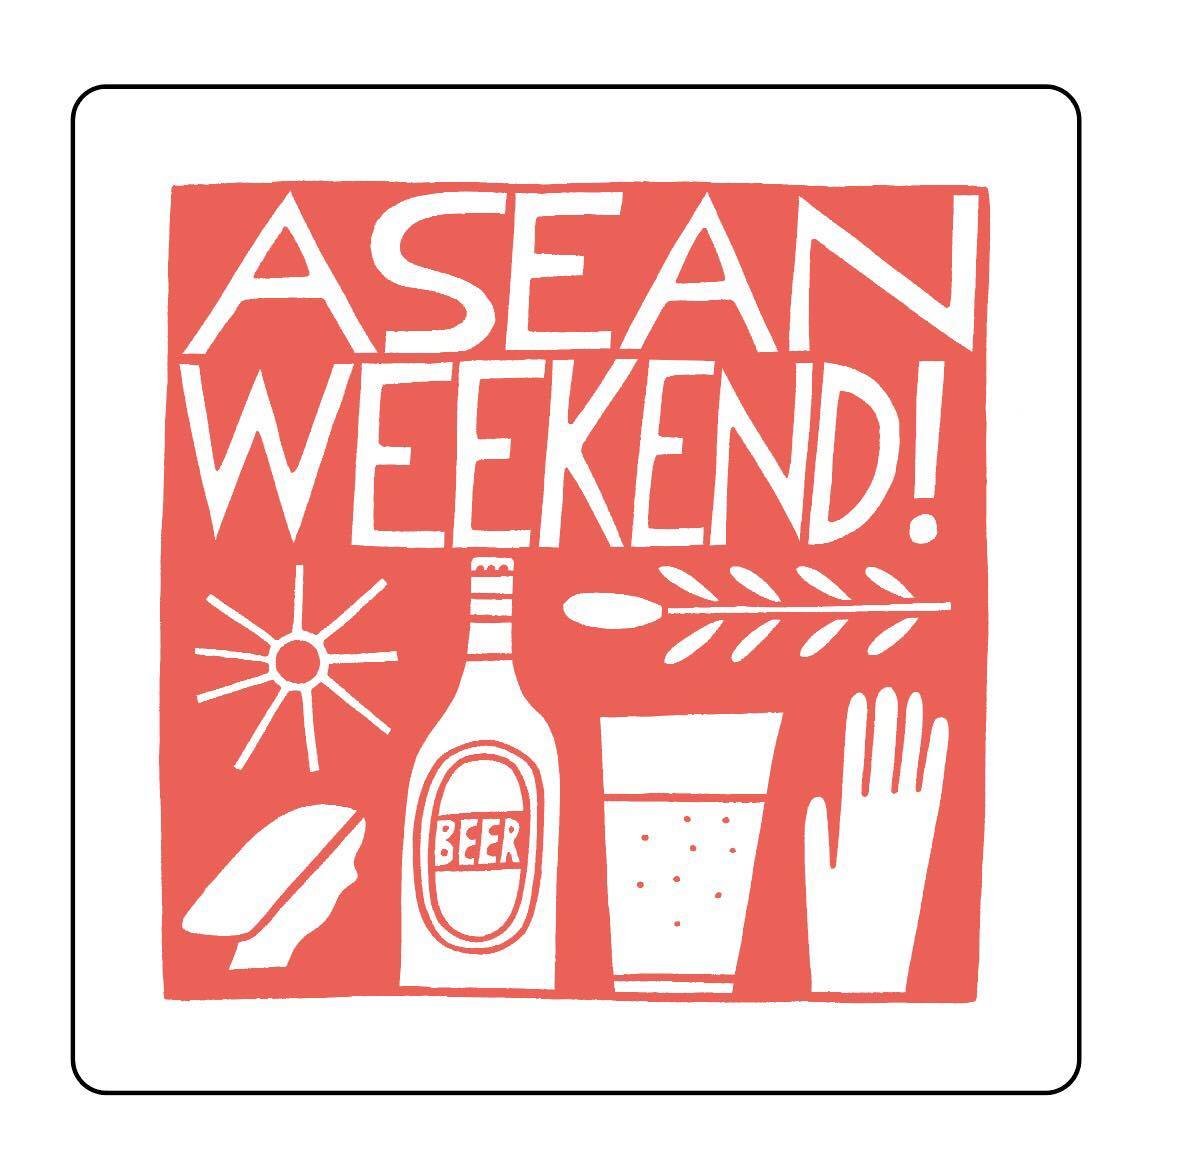 ASEAN WEEKEND!